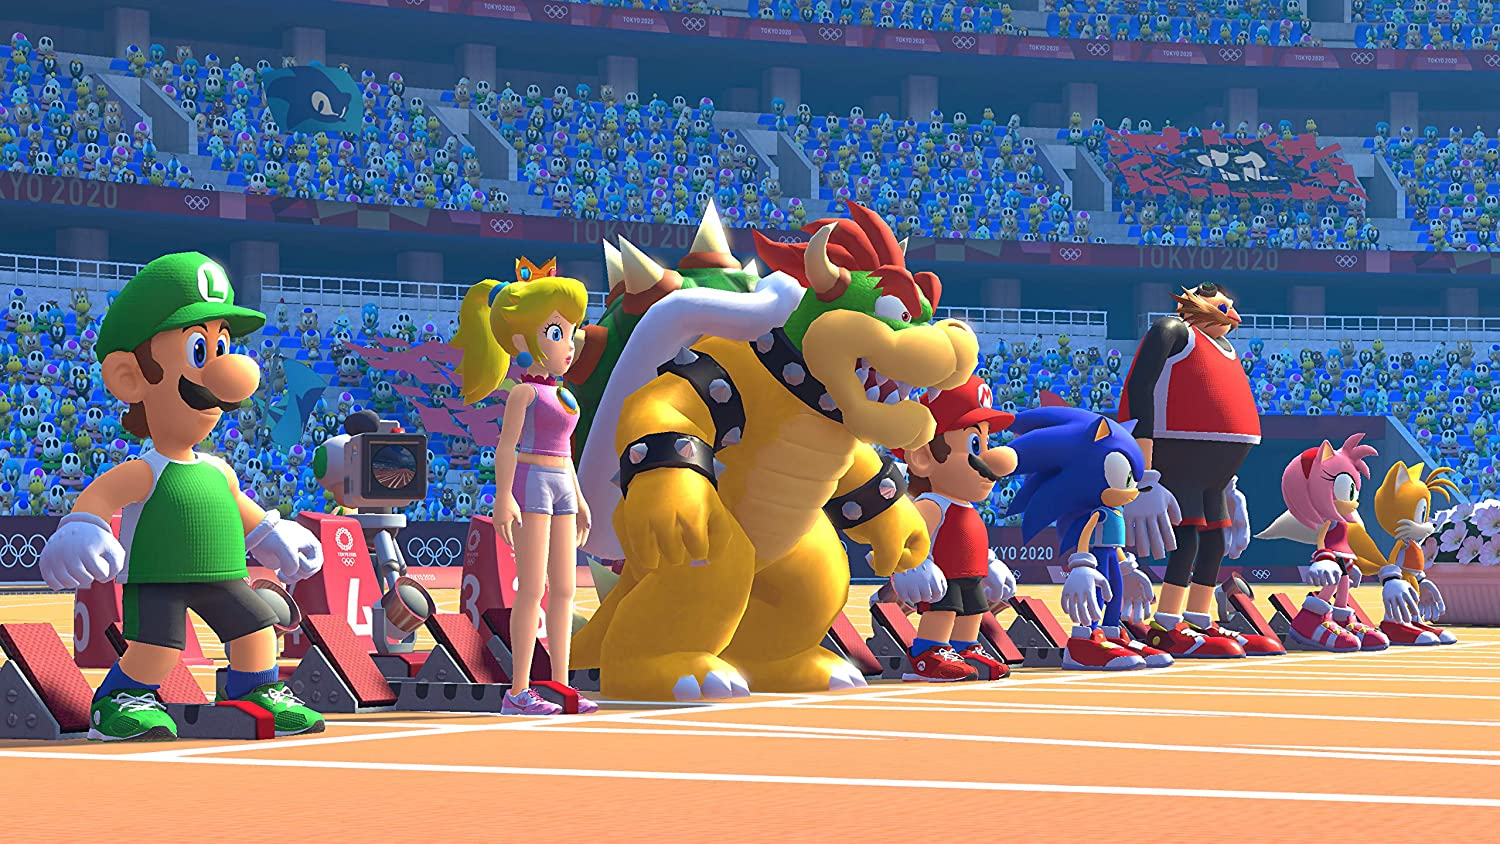 Zelda, Nintendo Music Reportedly Cut from Olympics Opening Ceremony in Late-Stage Planning